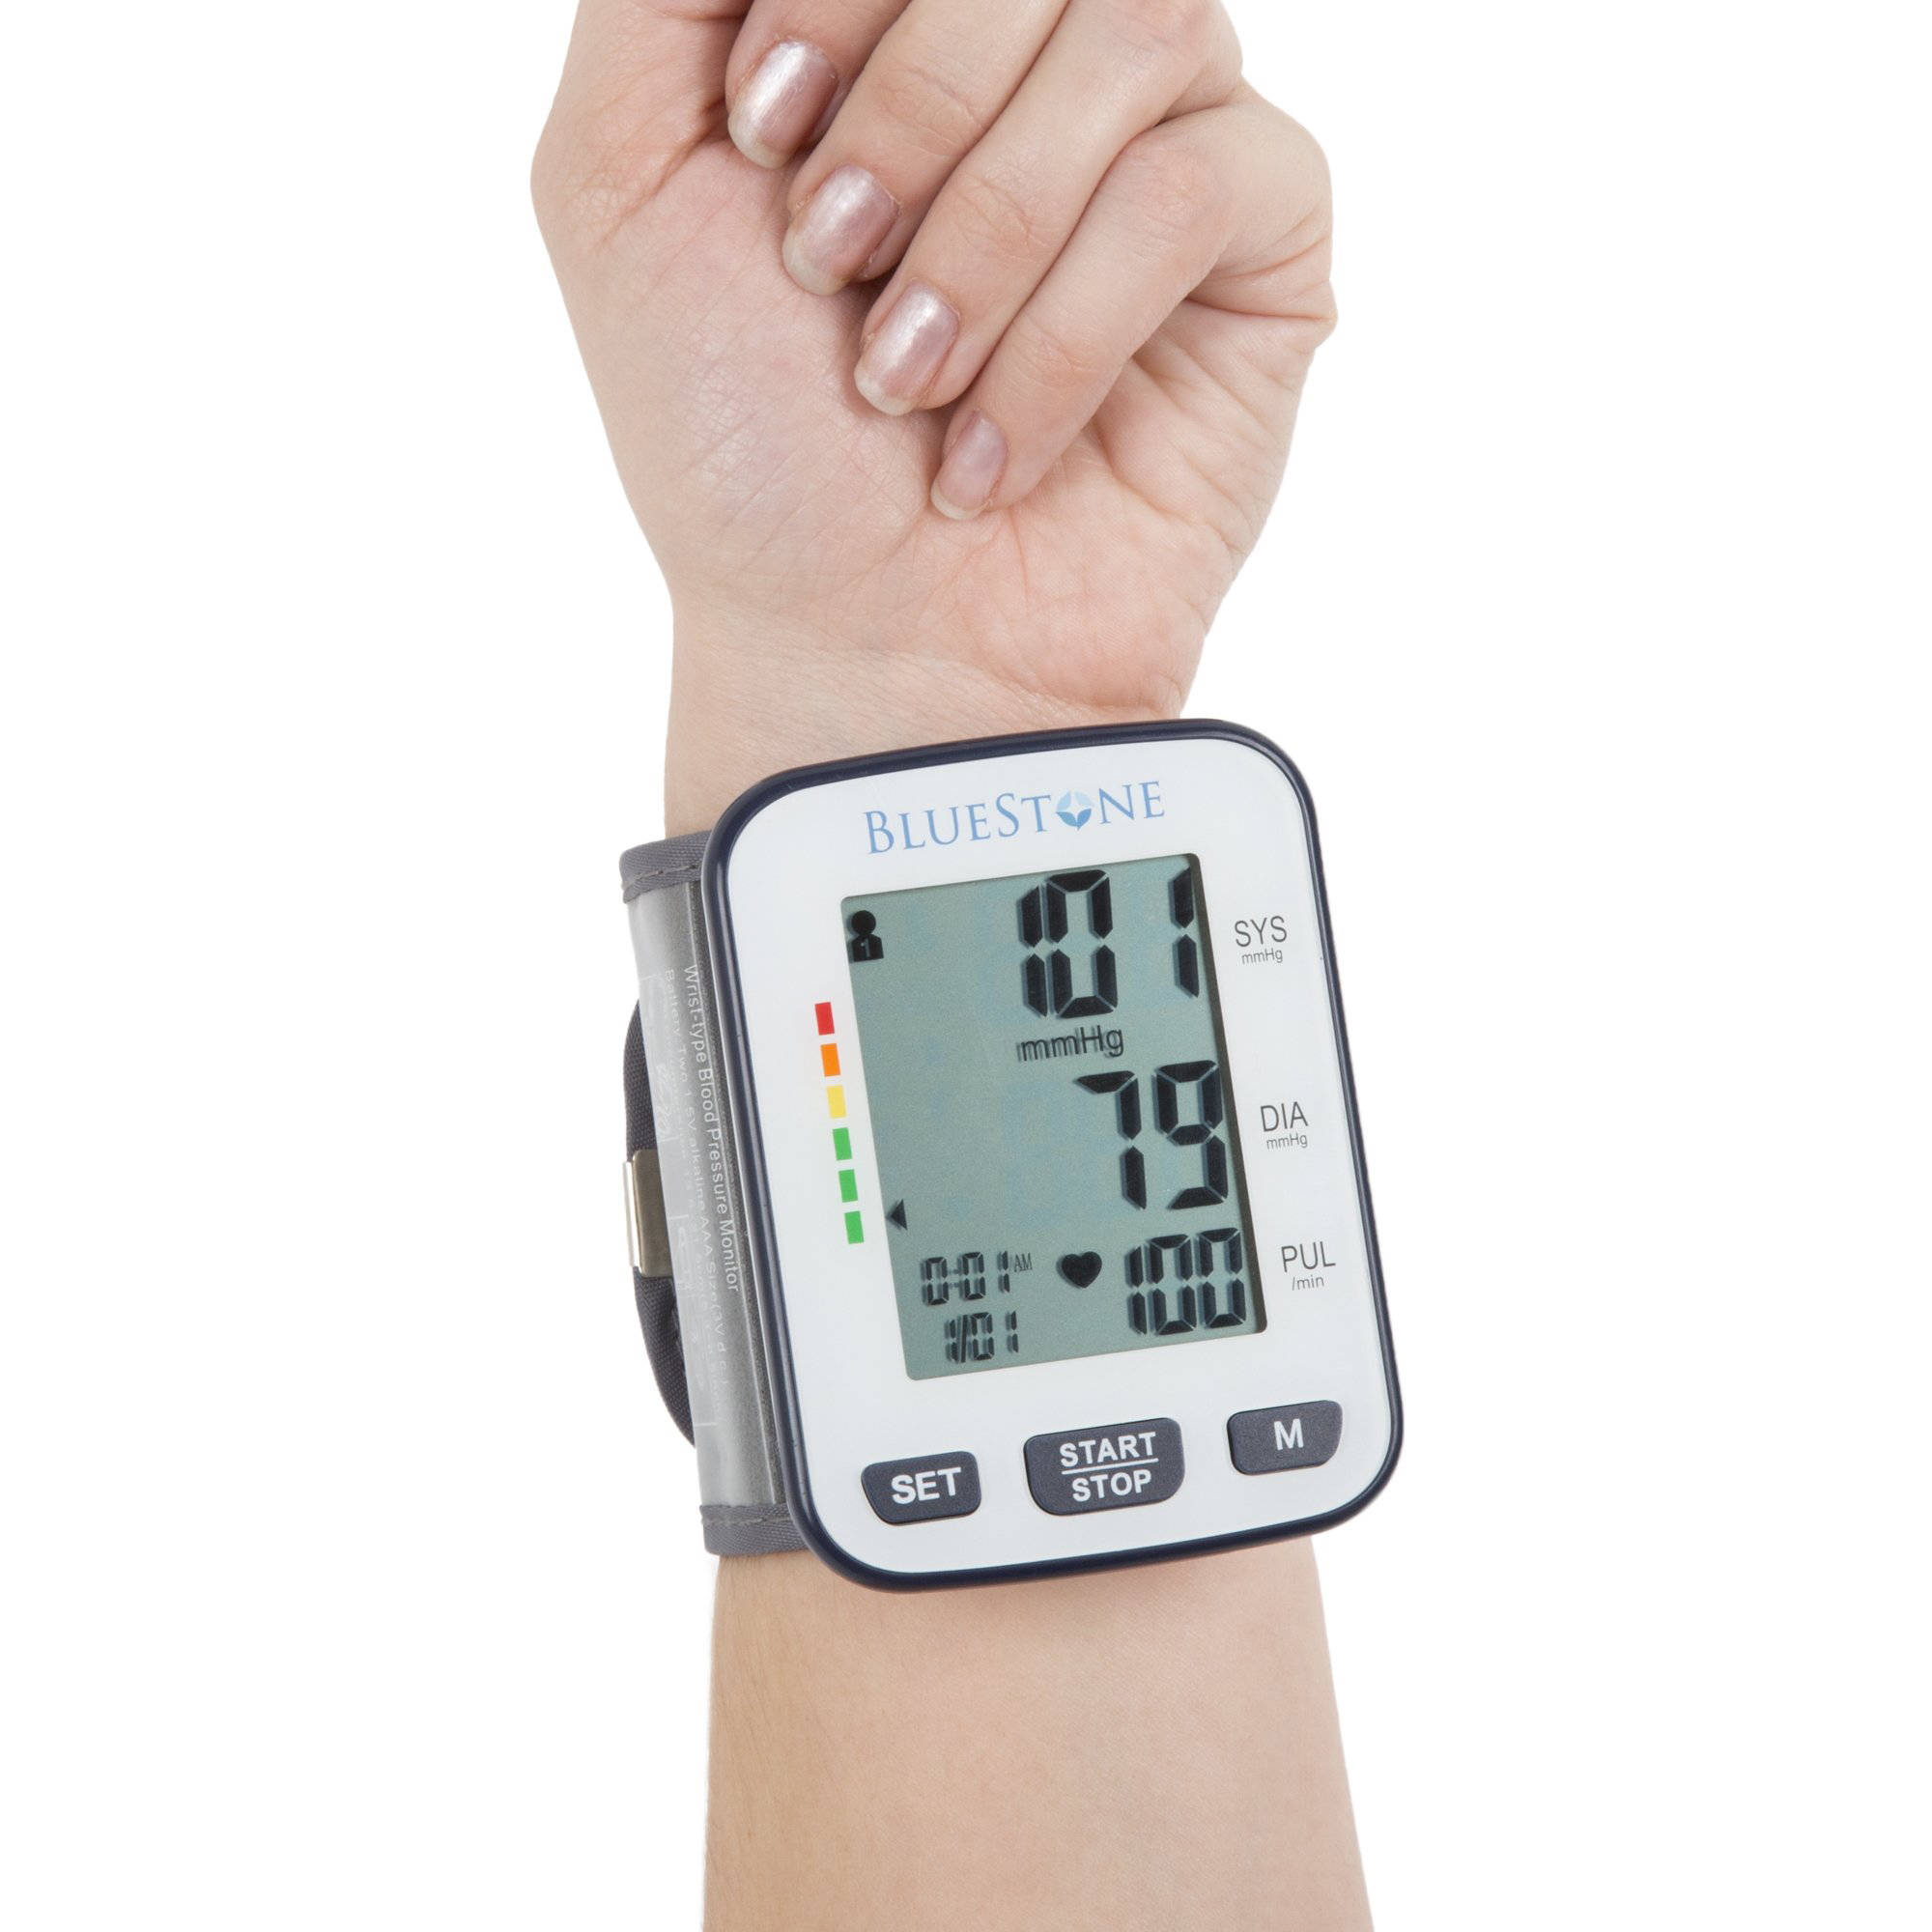 Bluestone Automatic Wrist Blood Pressure Monitor